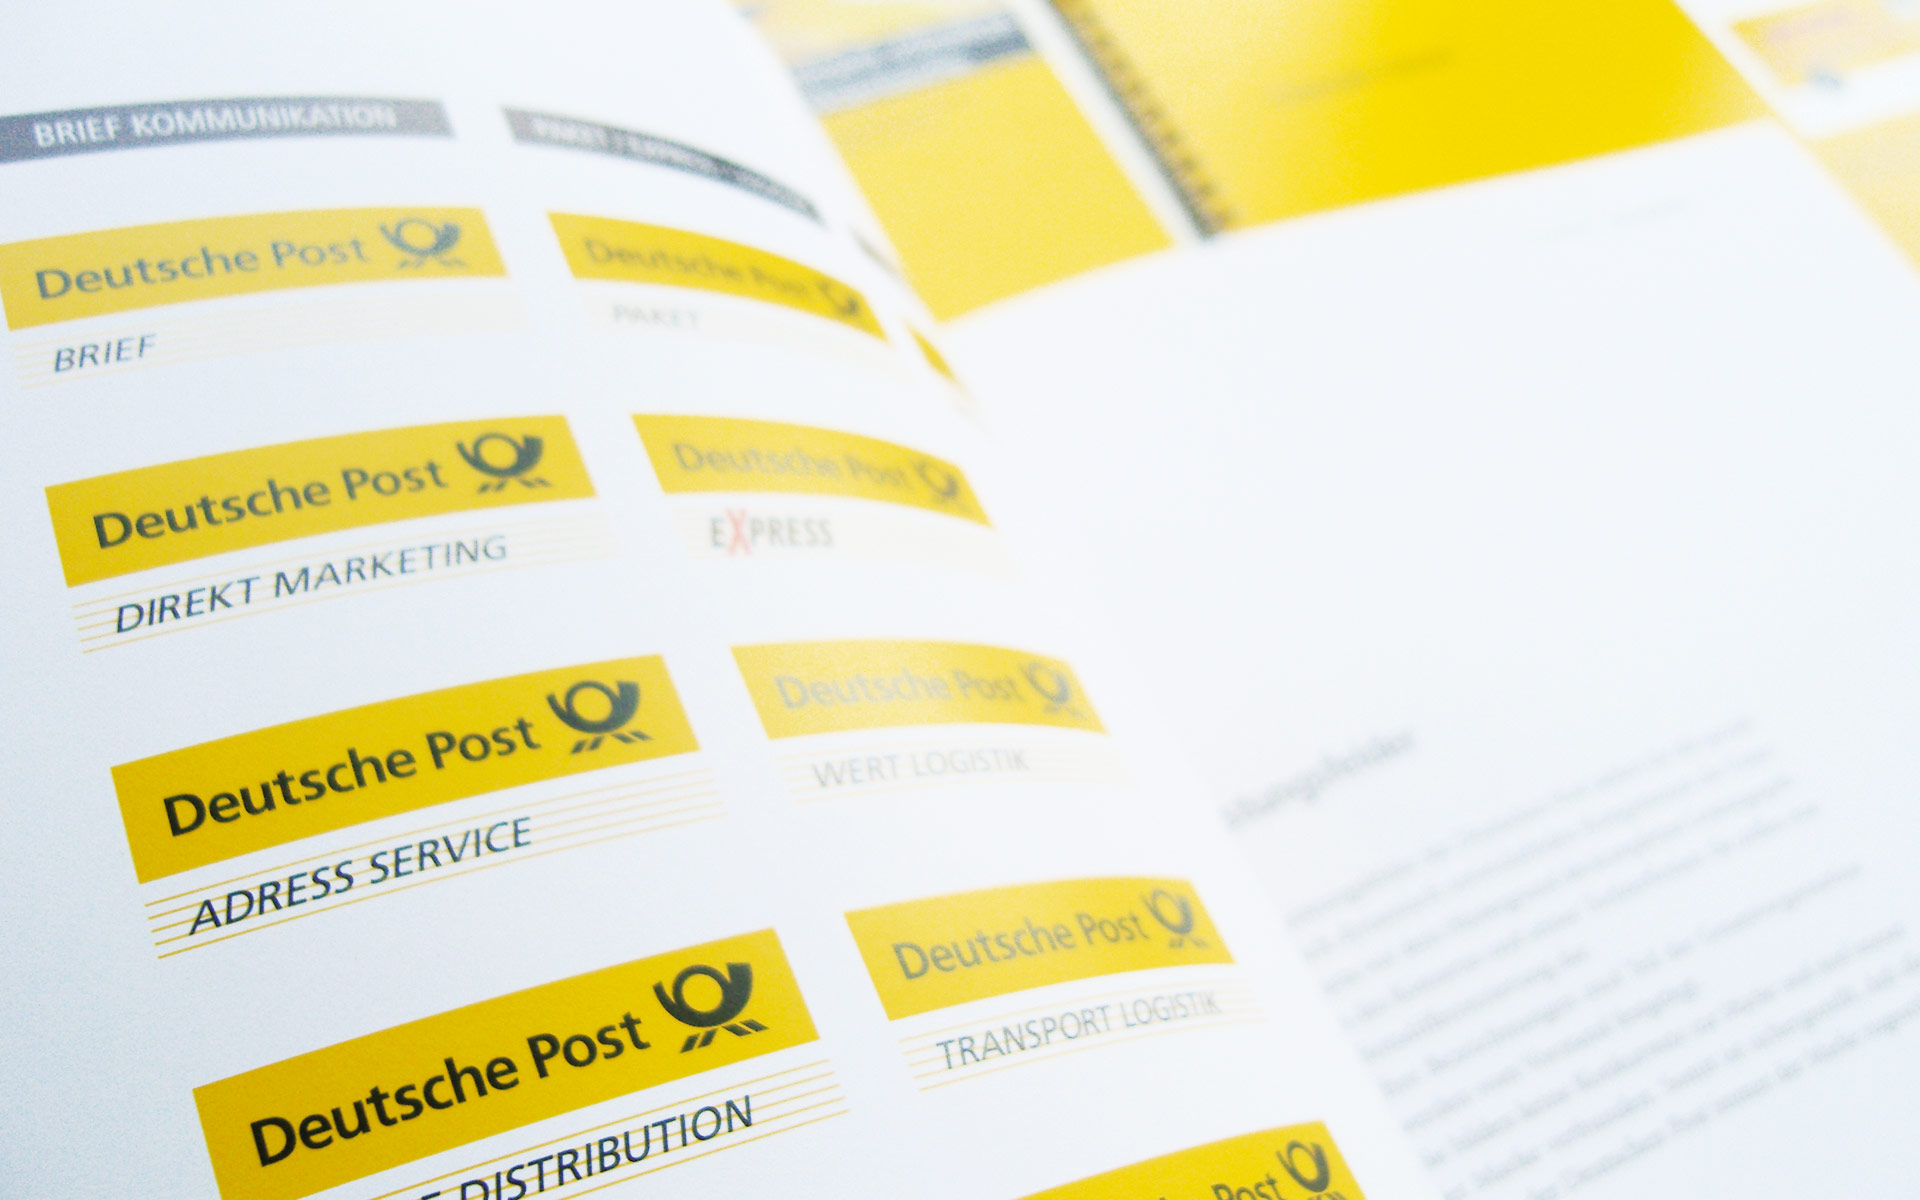 Deutsche Post AG / DHL Corporate Design,  CD-Manual, Markenfelder